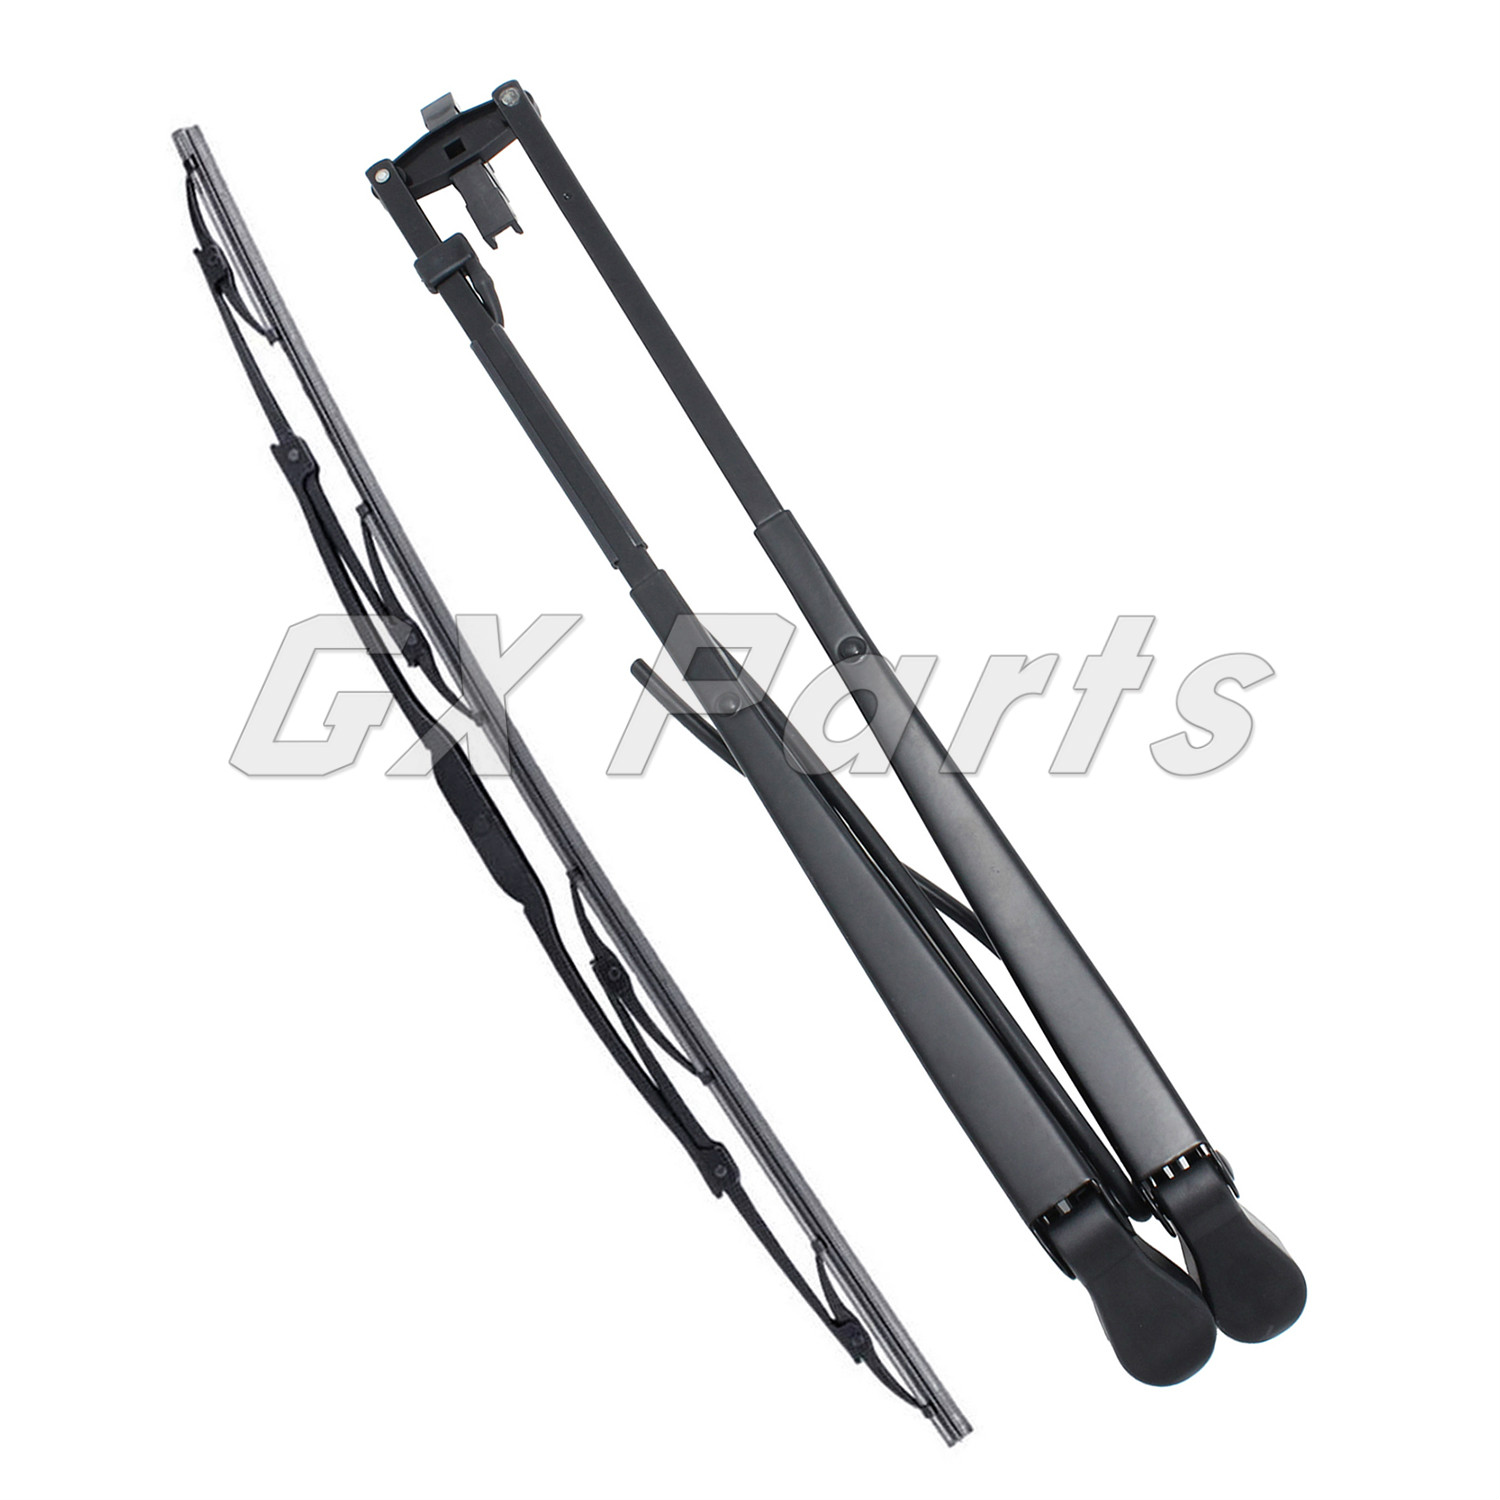 7188371 Windshield Wiper Arm & Blade for Bobcat 751 753 863 864 S130 S175 S250 S300 T110(China)